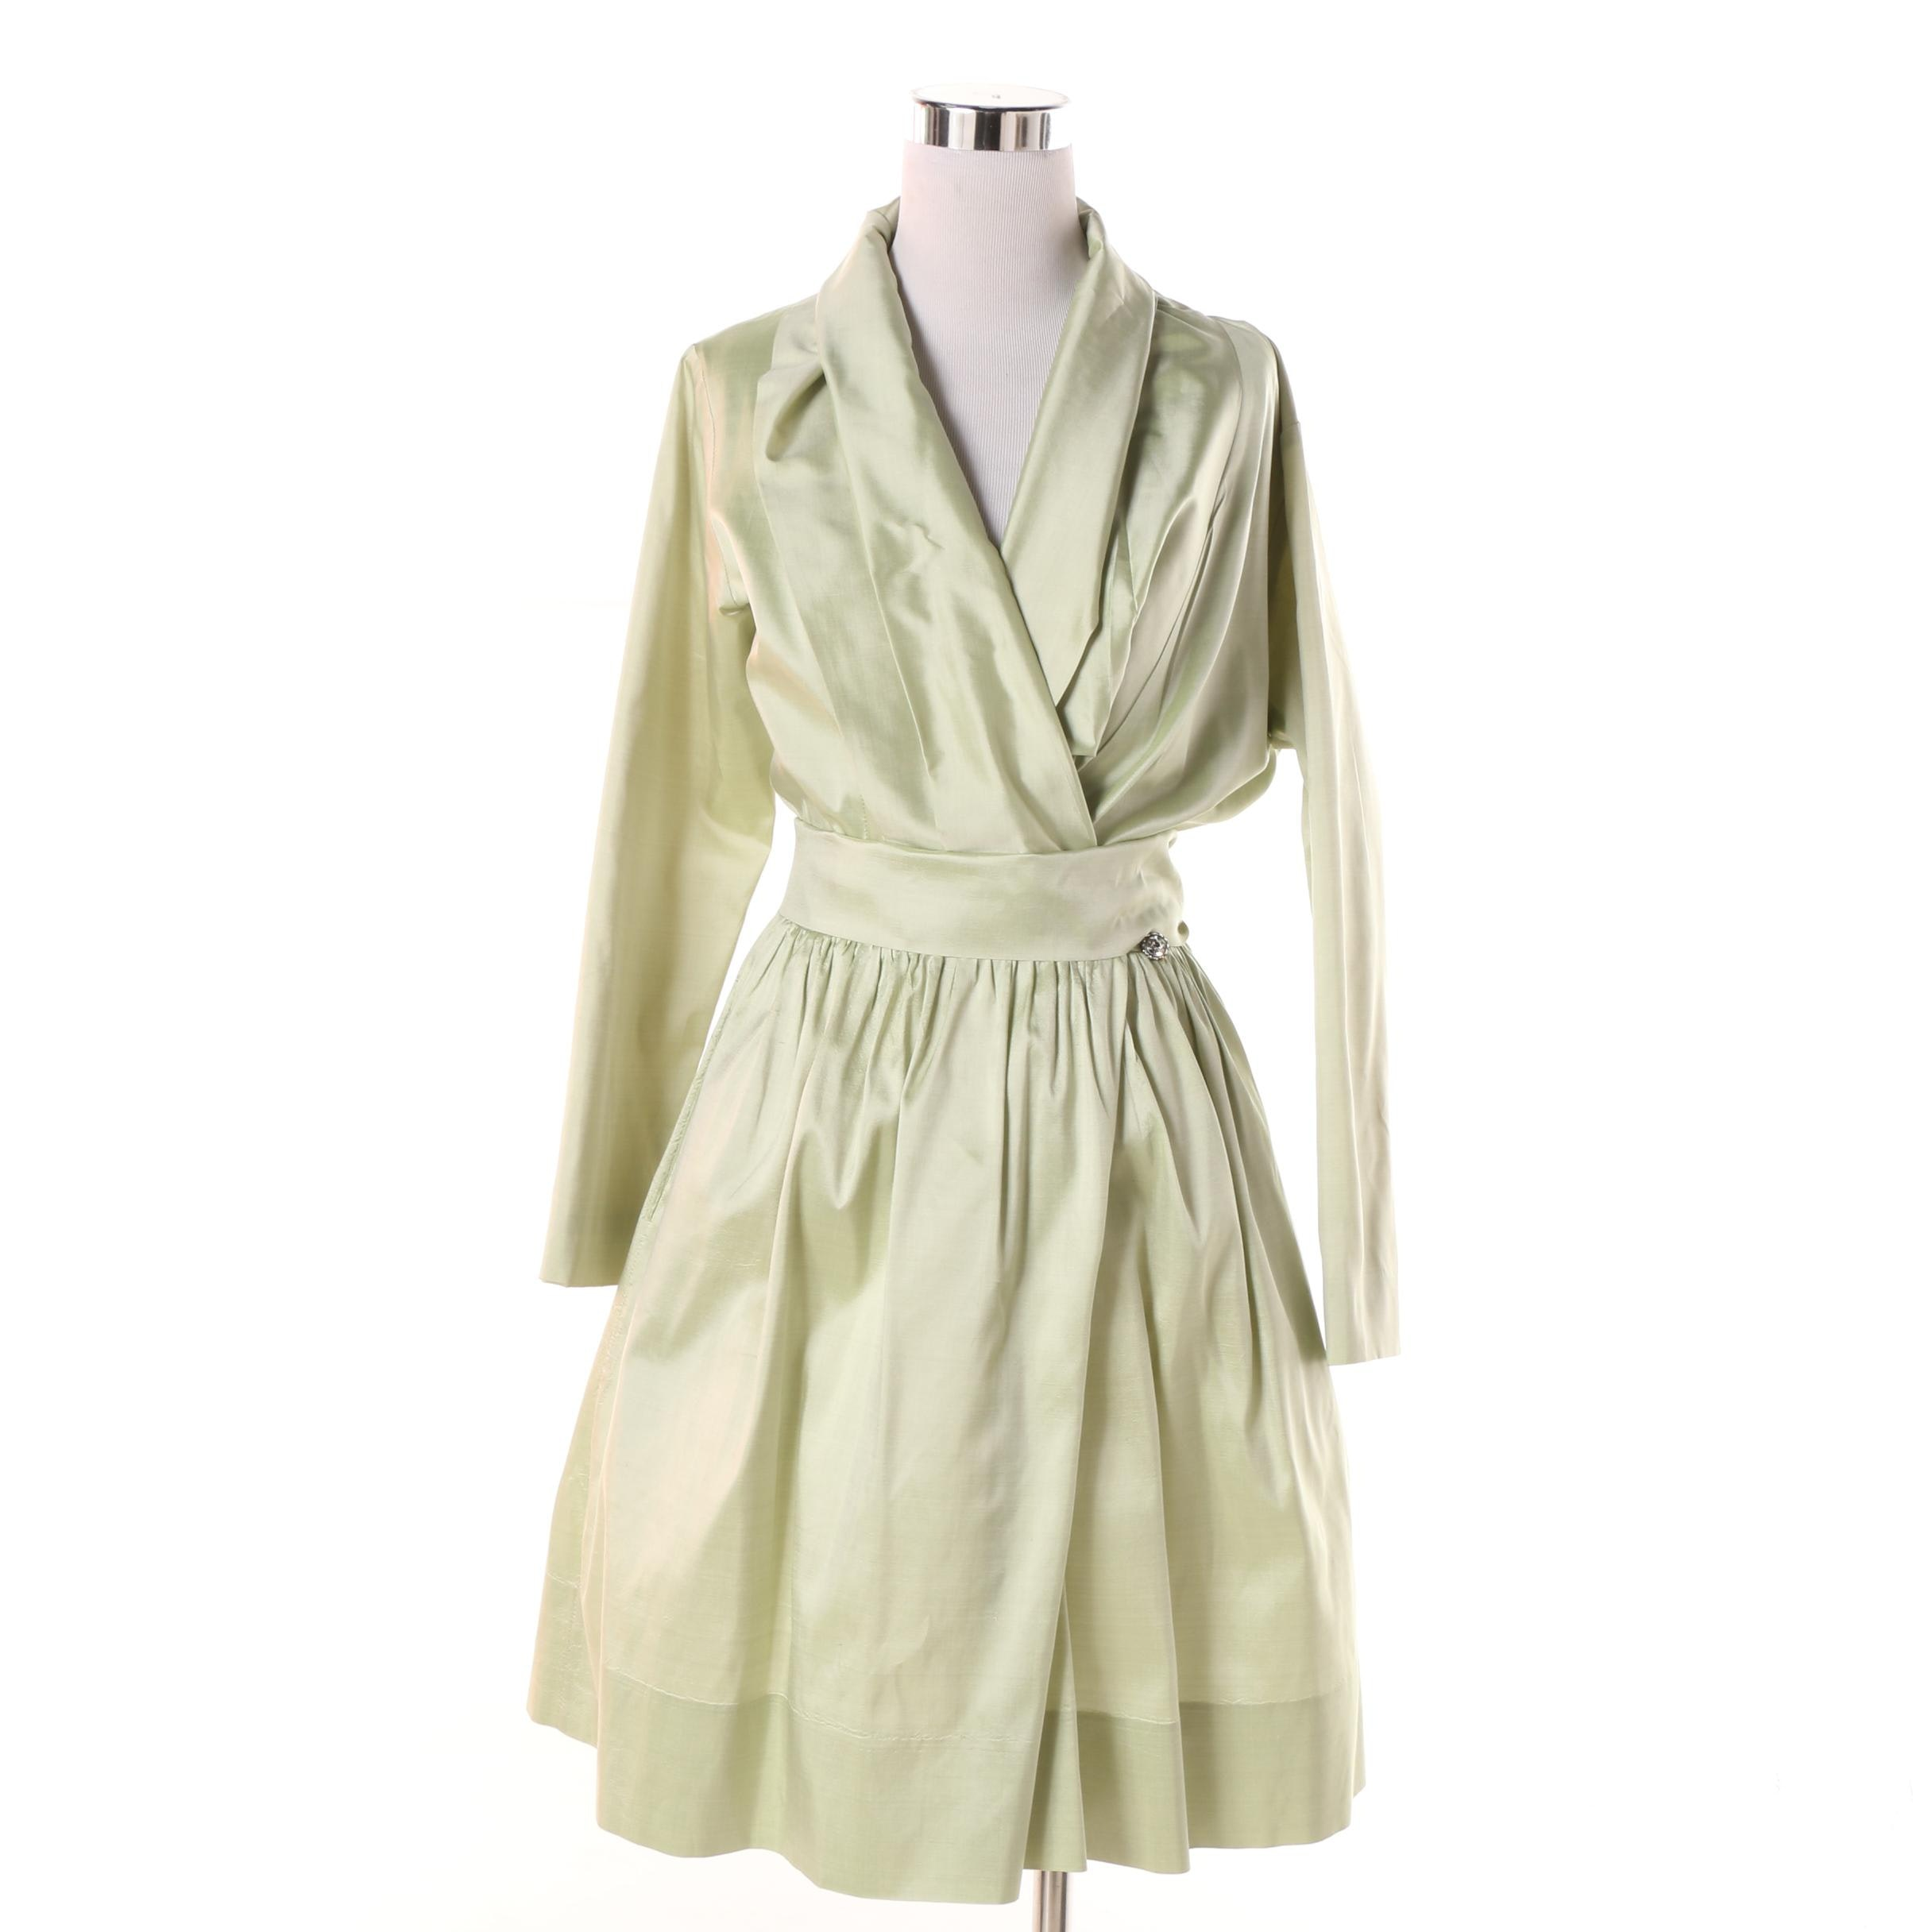 Catherine Regehr for Henri Bendel New York Pale Green Silk Wrap Dress